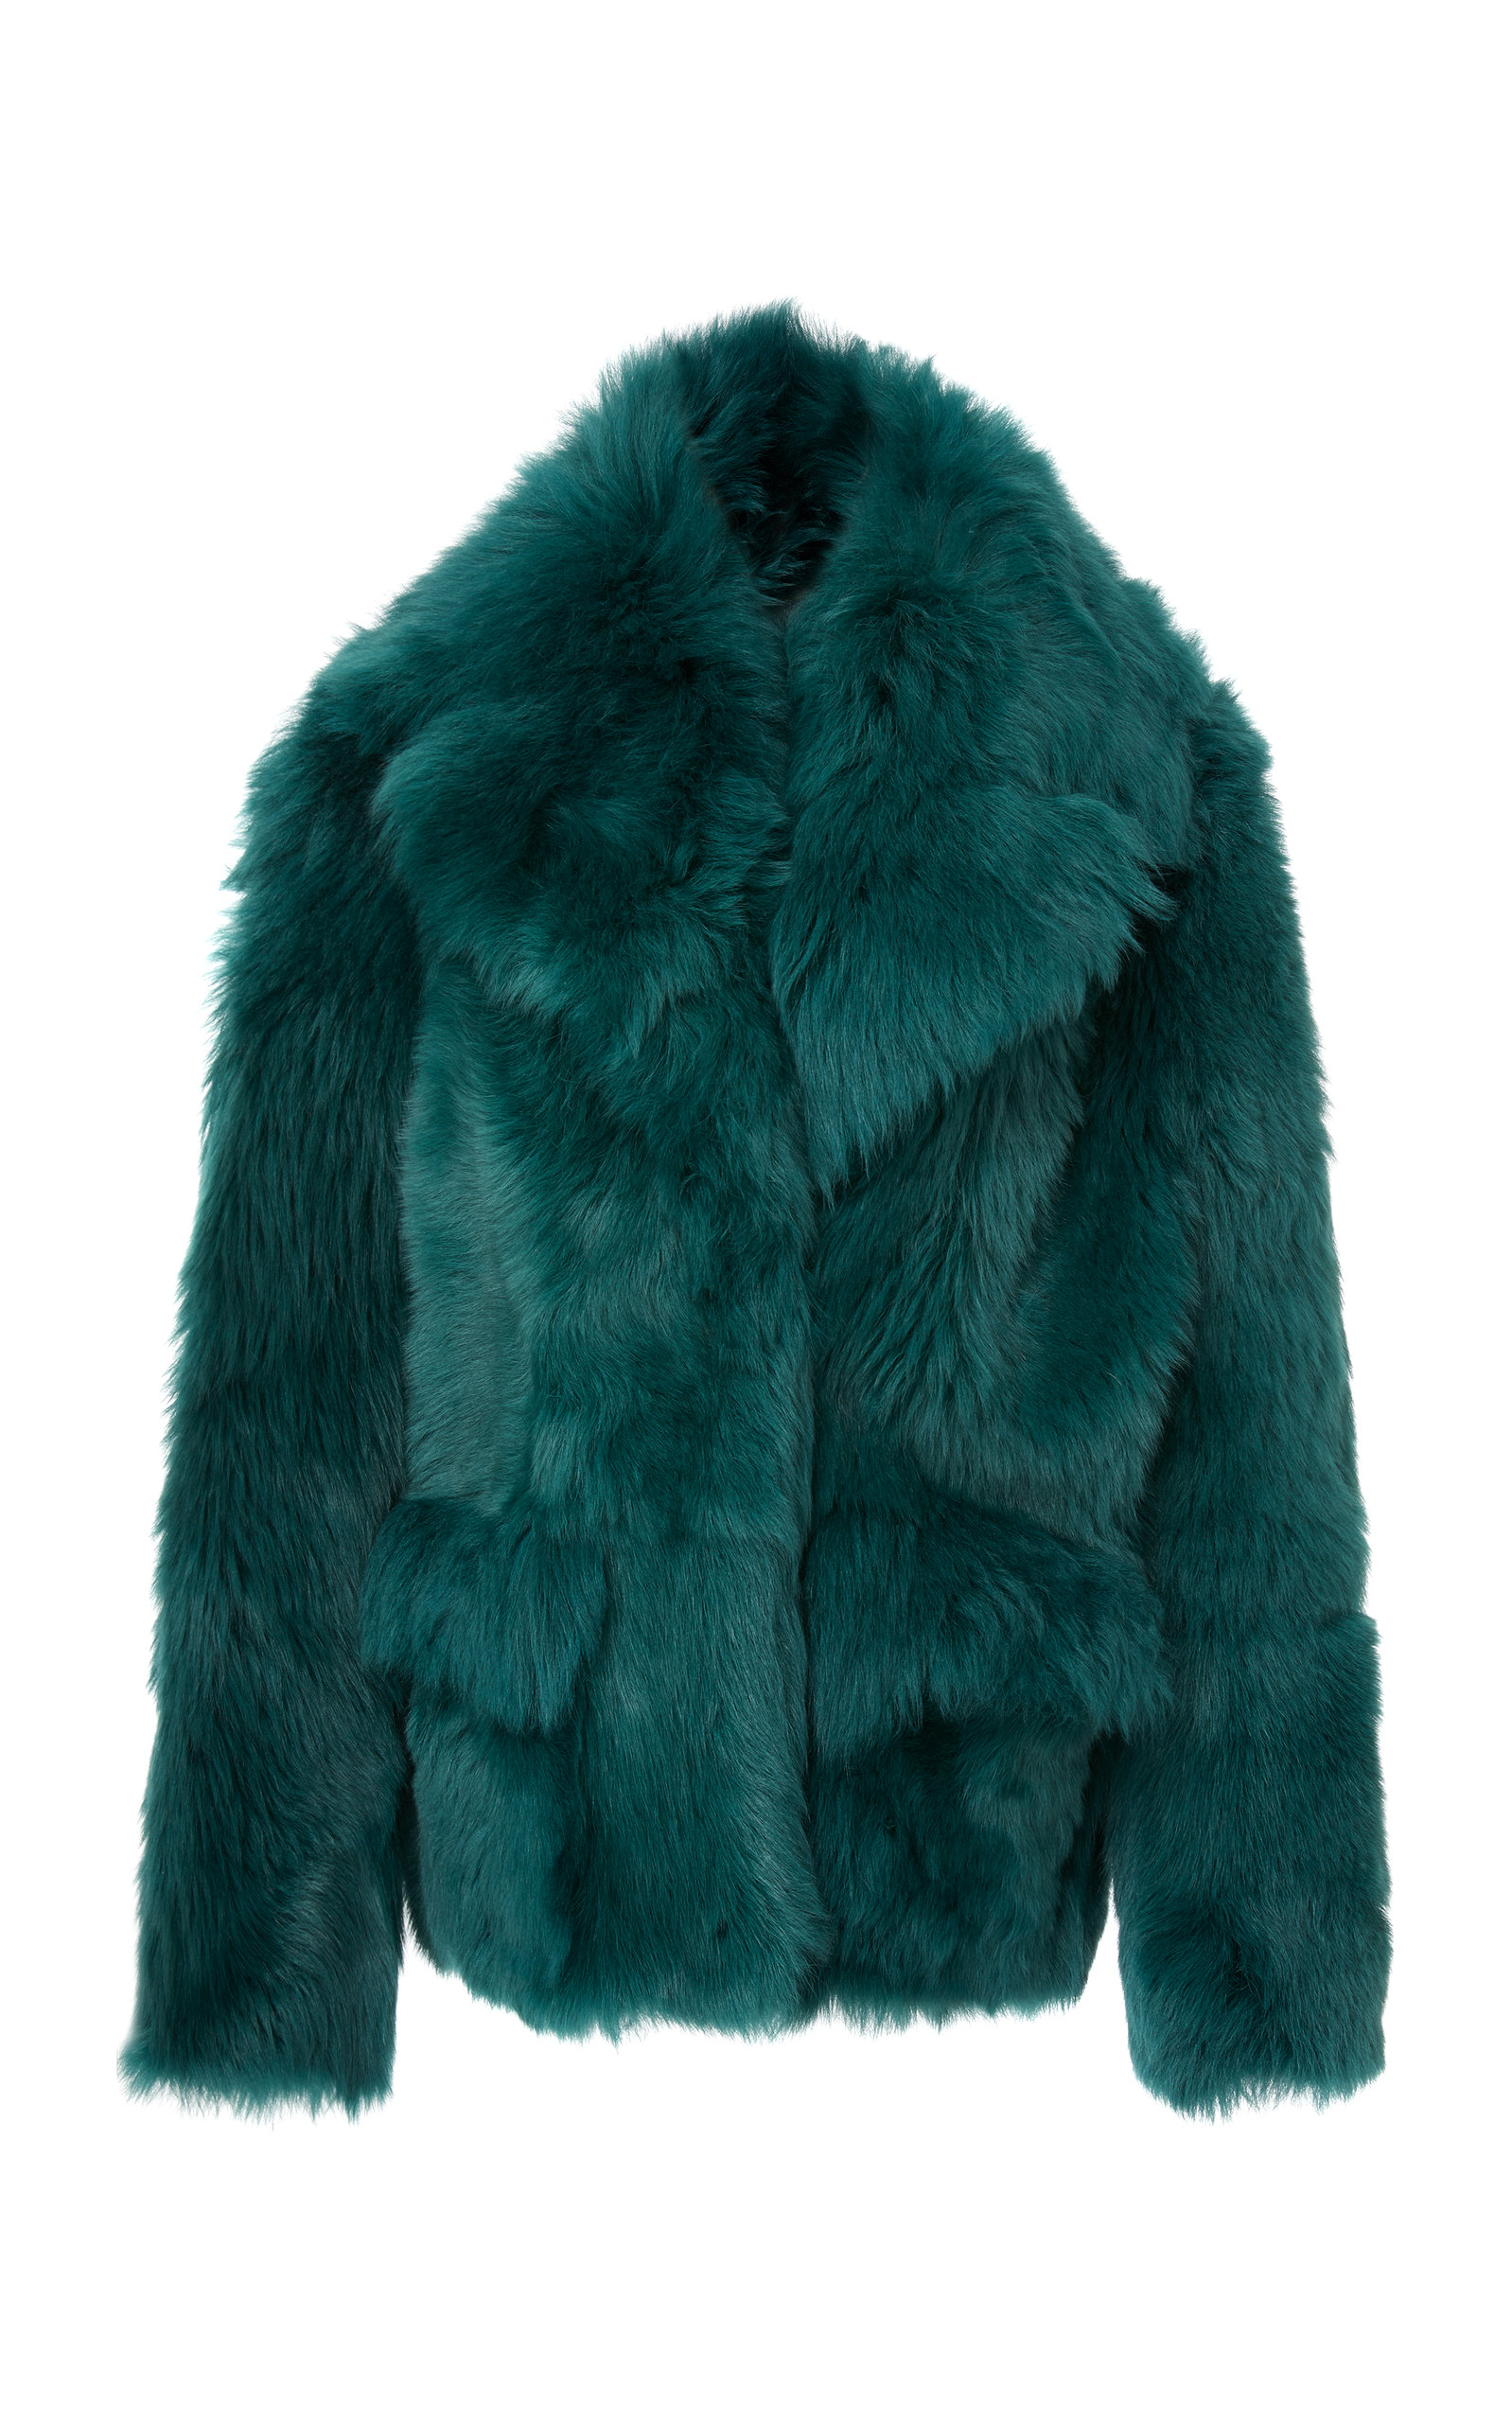 THE ZUZU EXAGGERATED SHEARLING JACKET